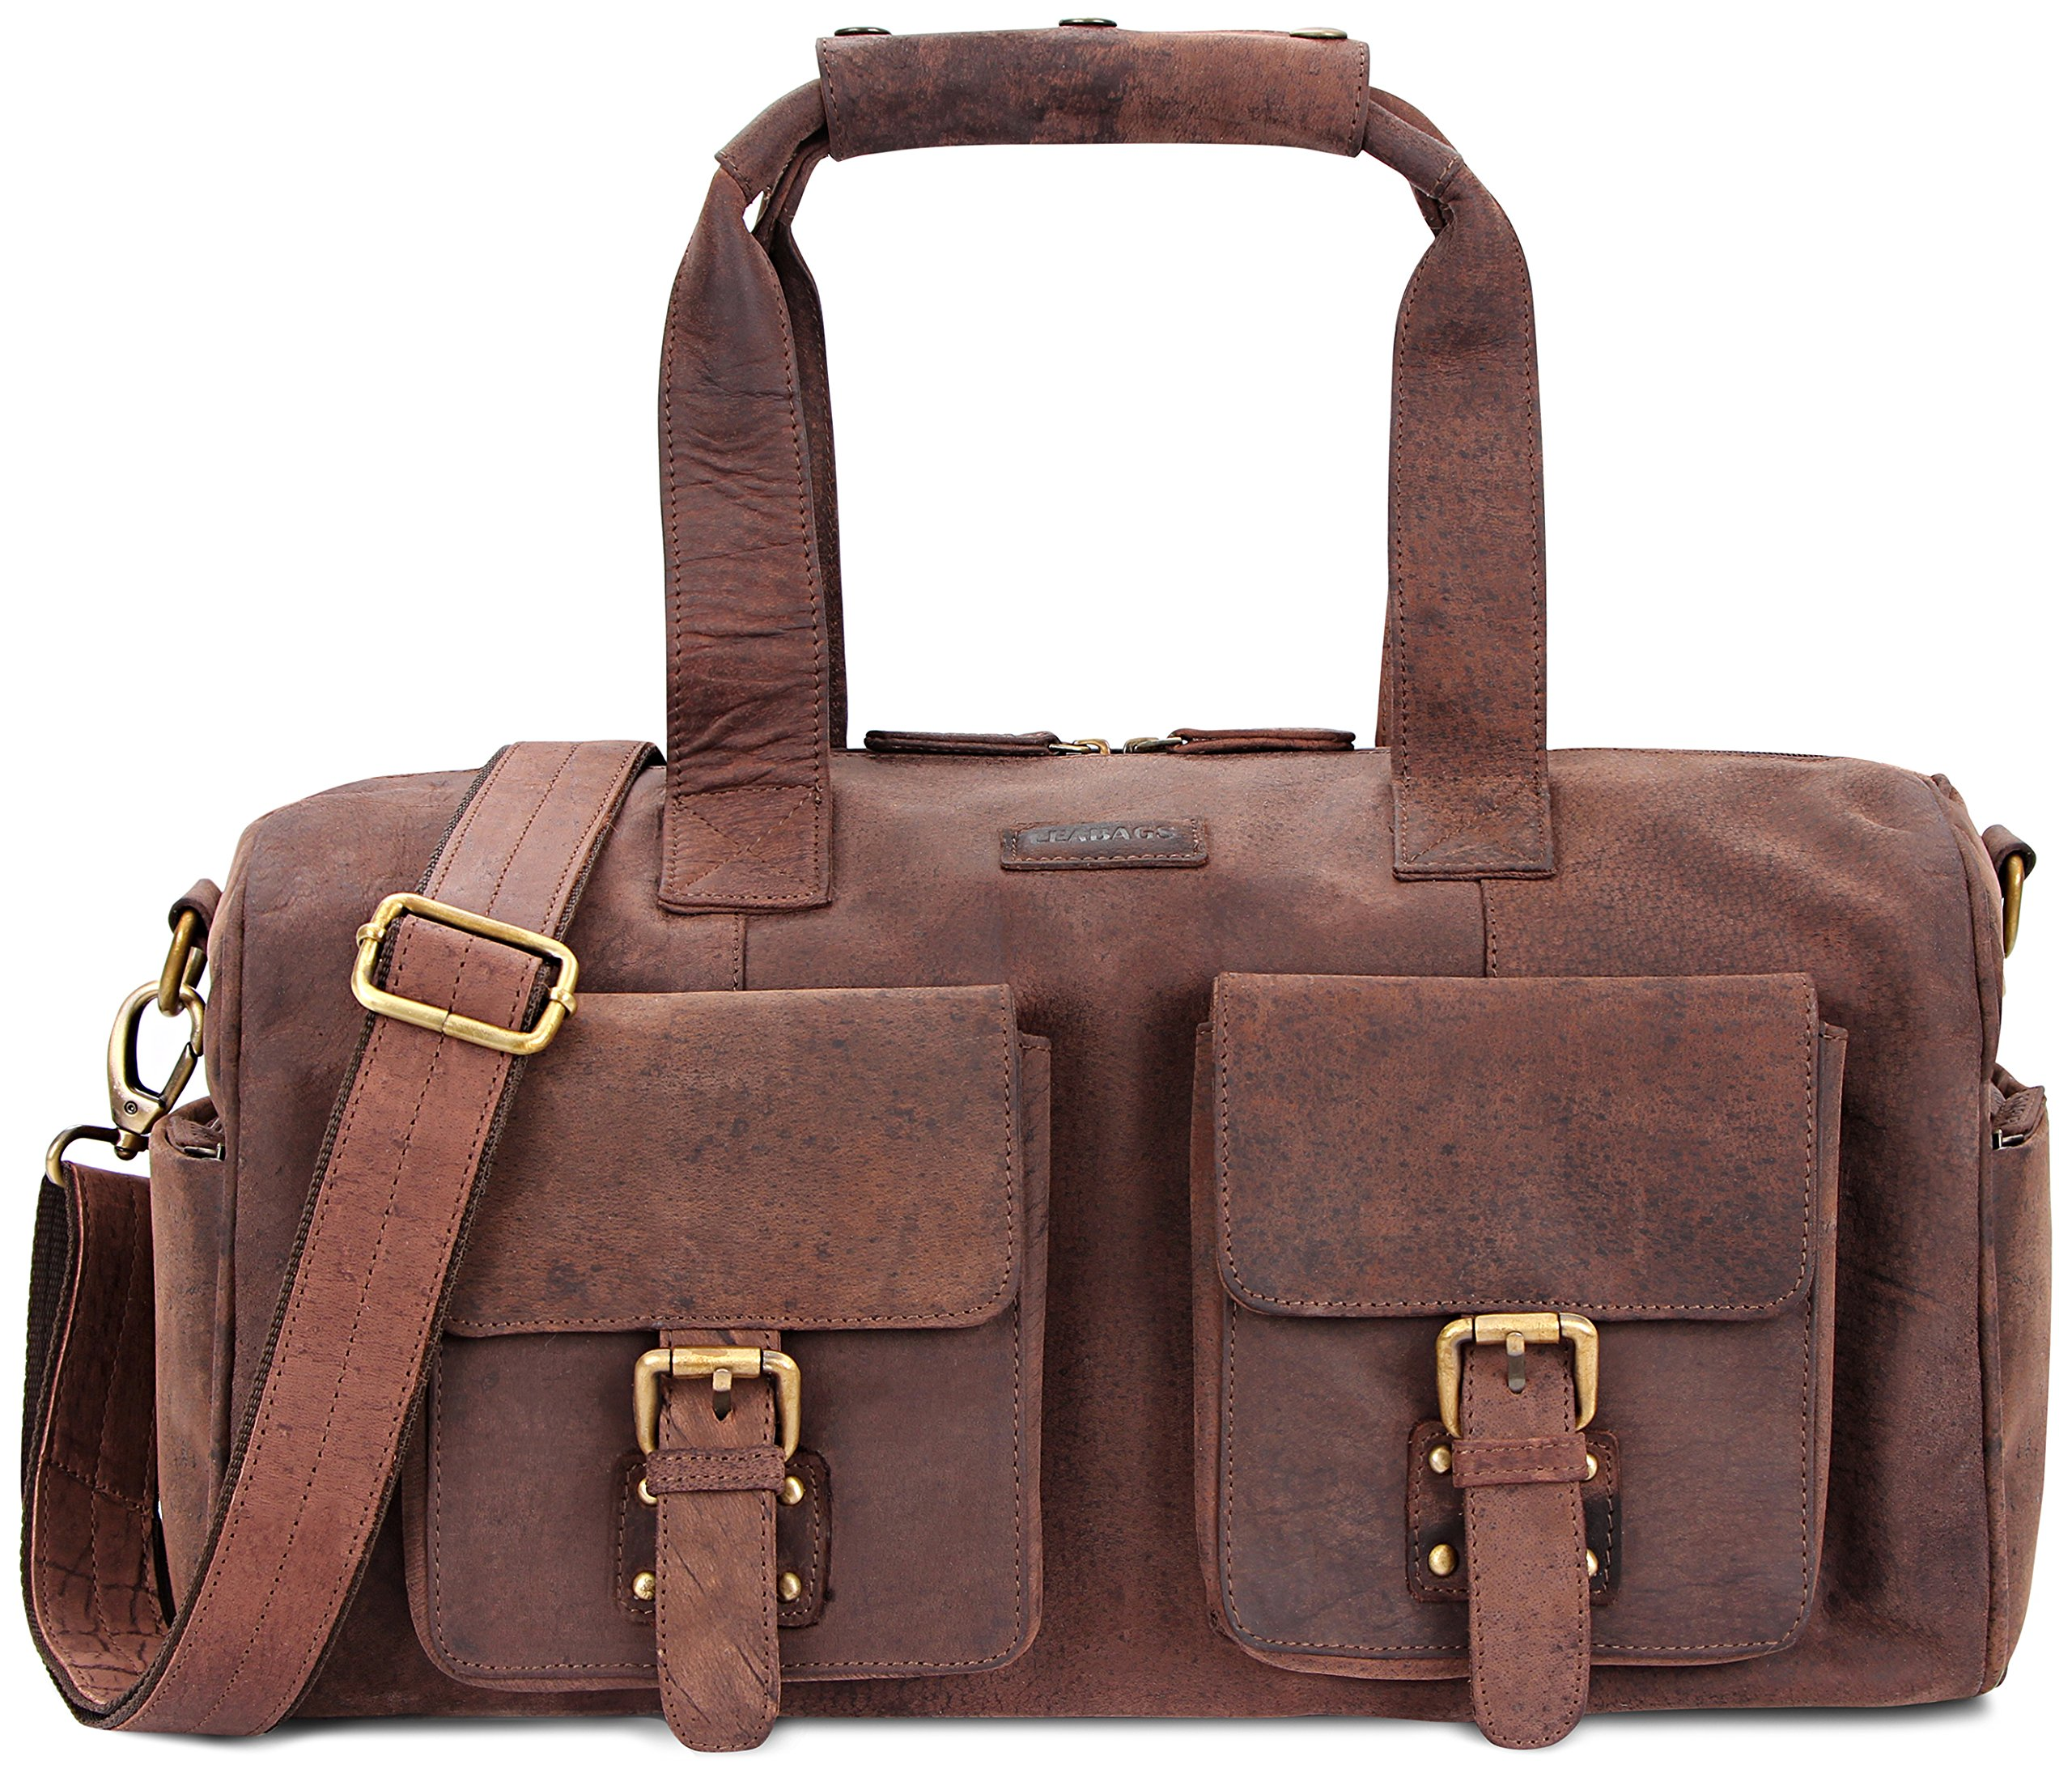 LEABAGS Munich genuine buffalo leather duffle bag in vintage style - Nutmeg